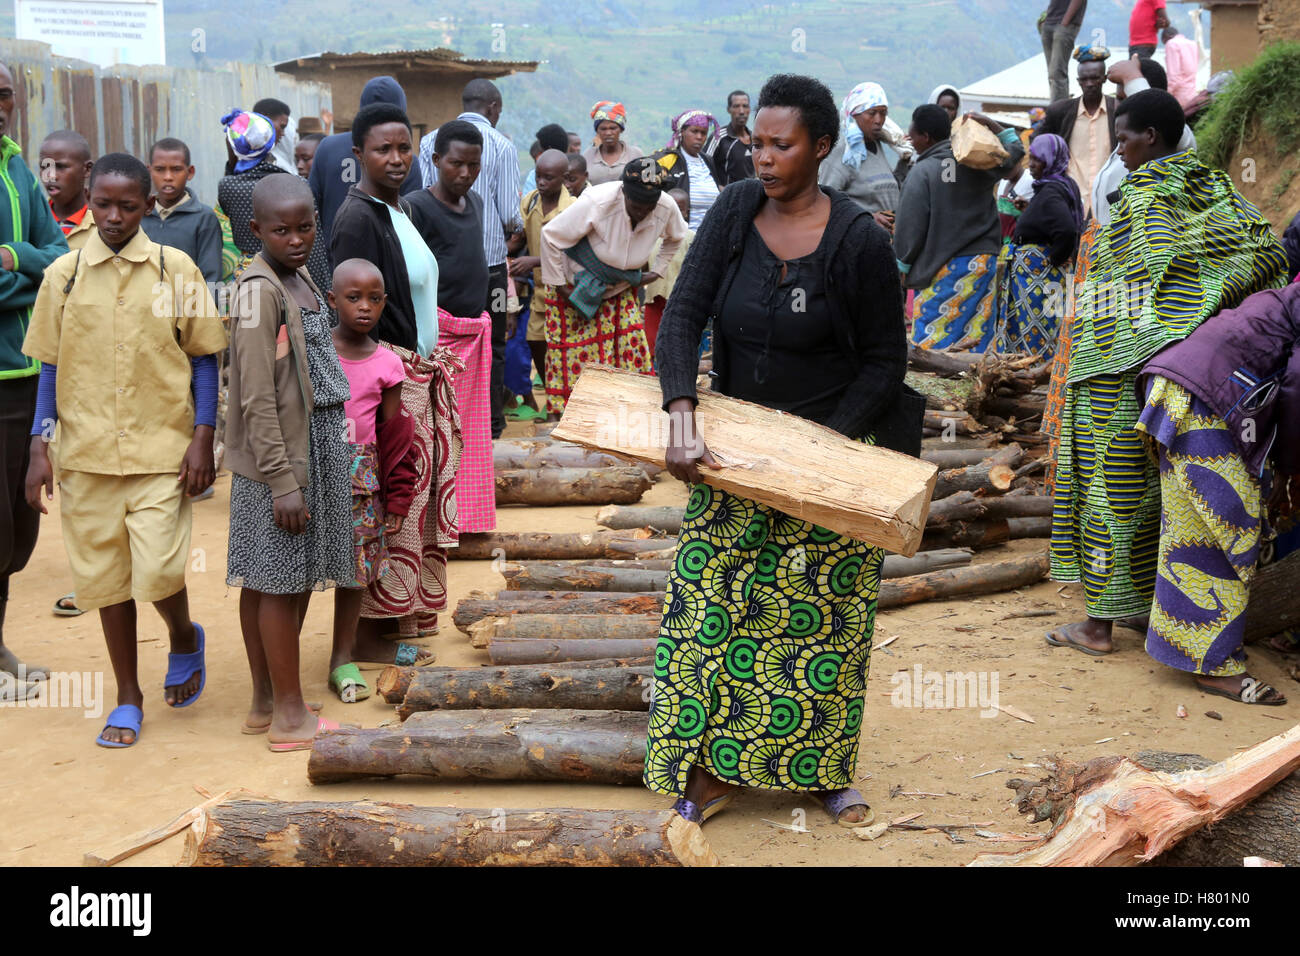 Firewood distribution to the families in the UNHCR refugee camp Kigeme, Diocese of Gikongoro, Rwanda, Africa - Stock Image